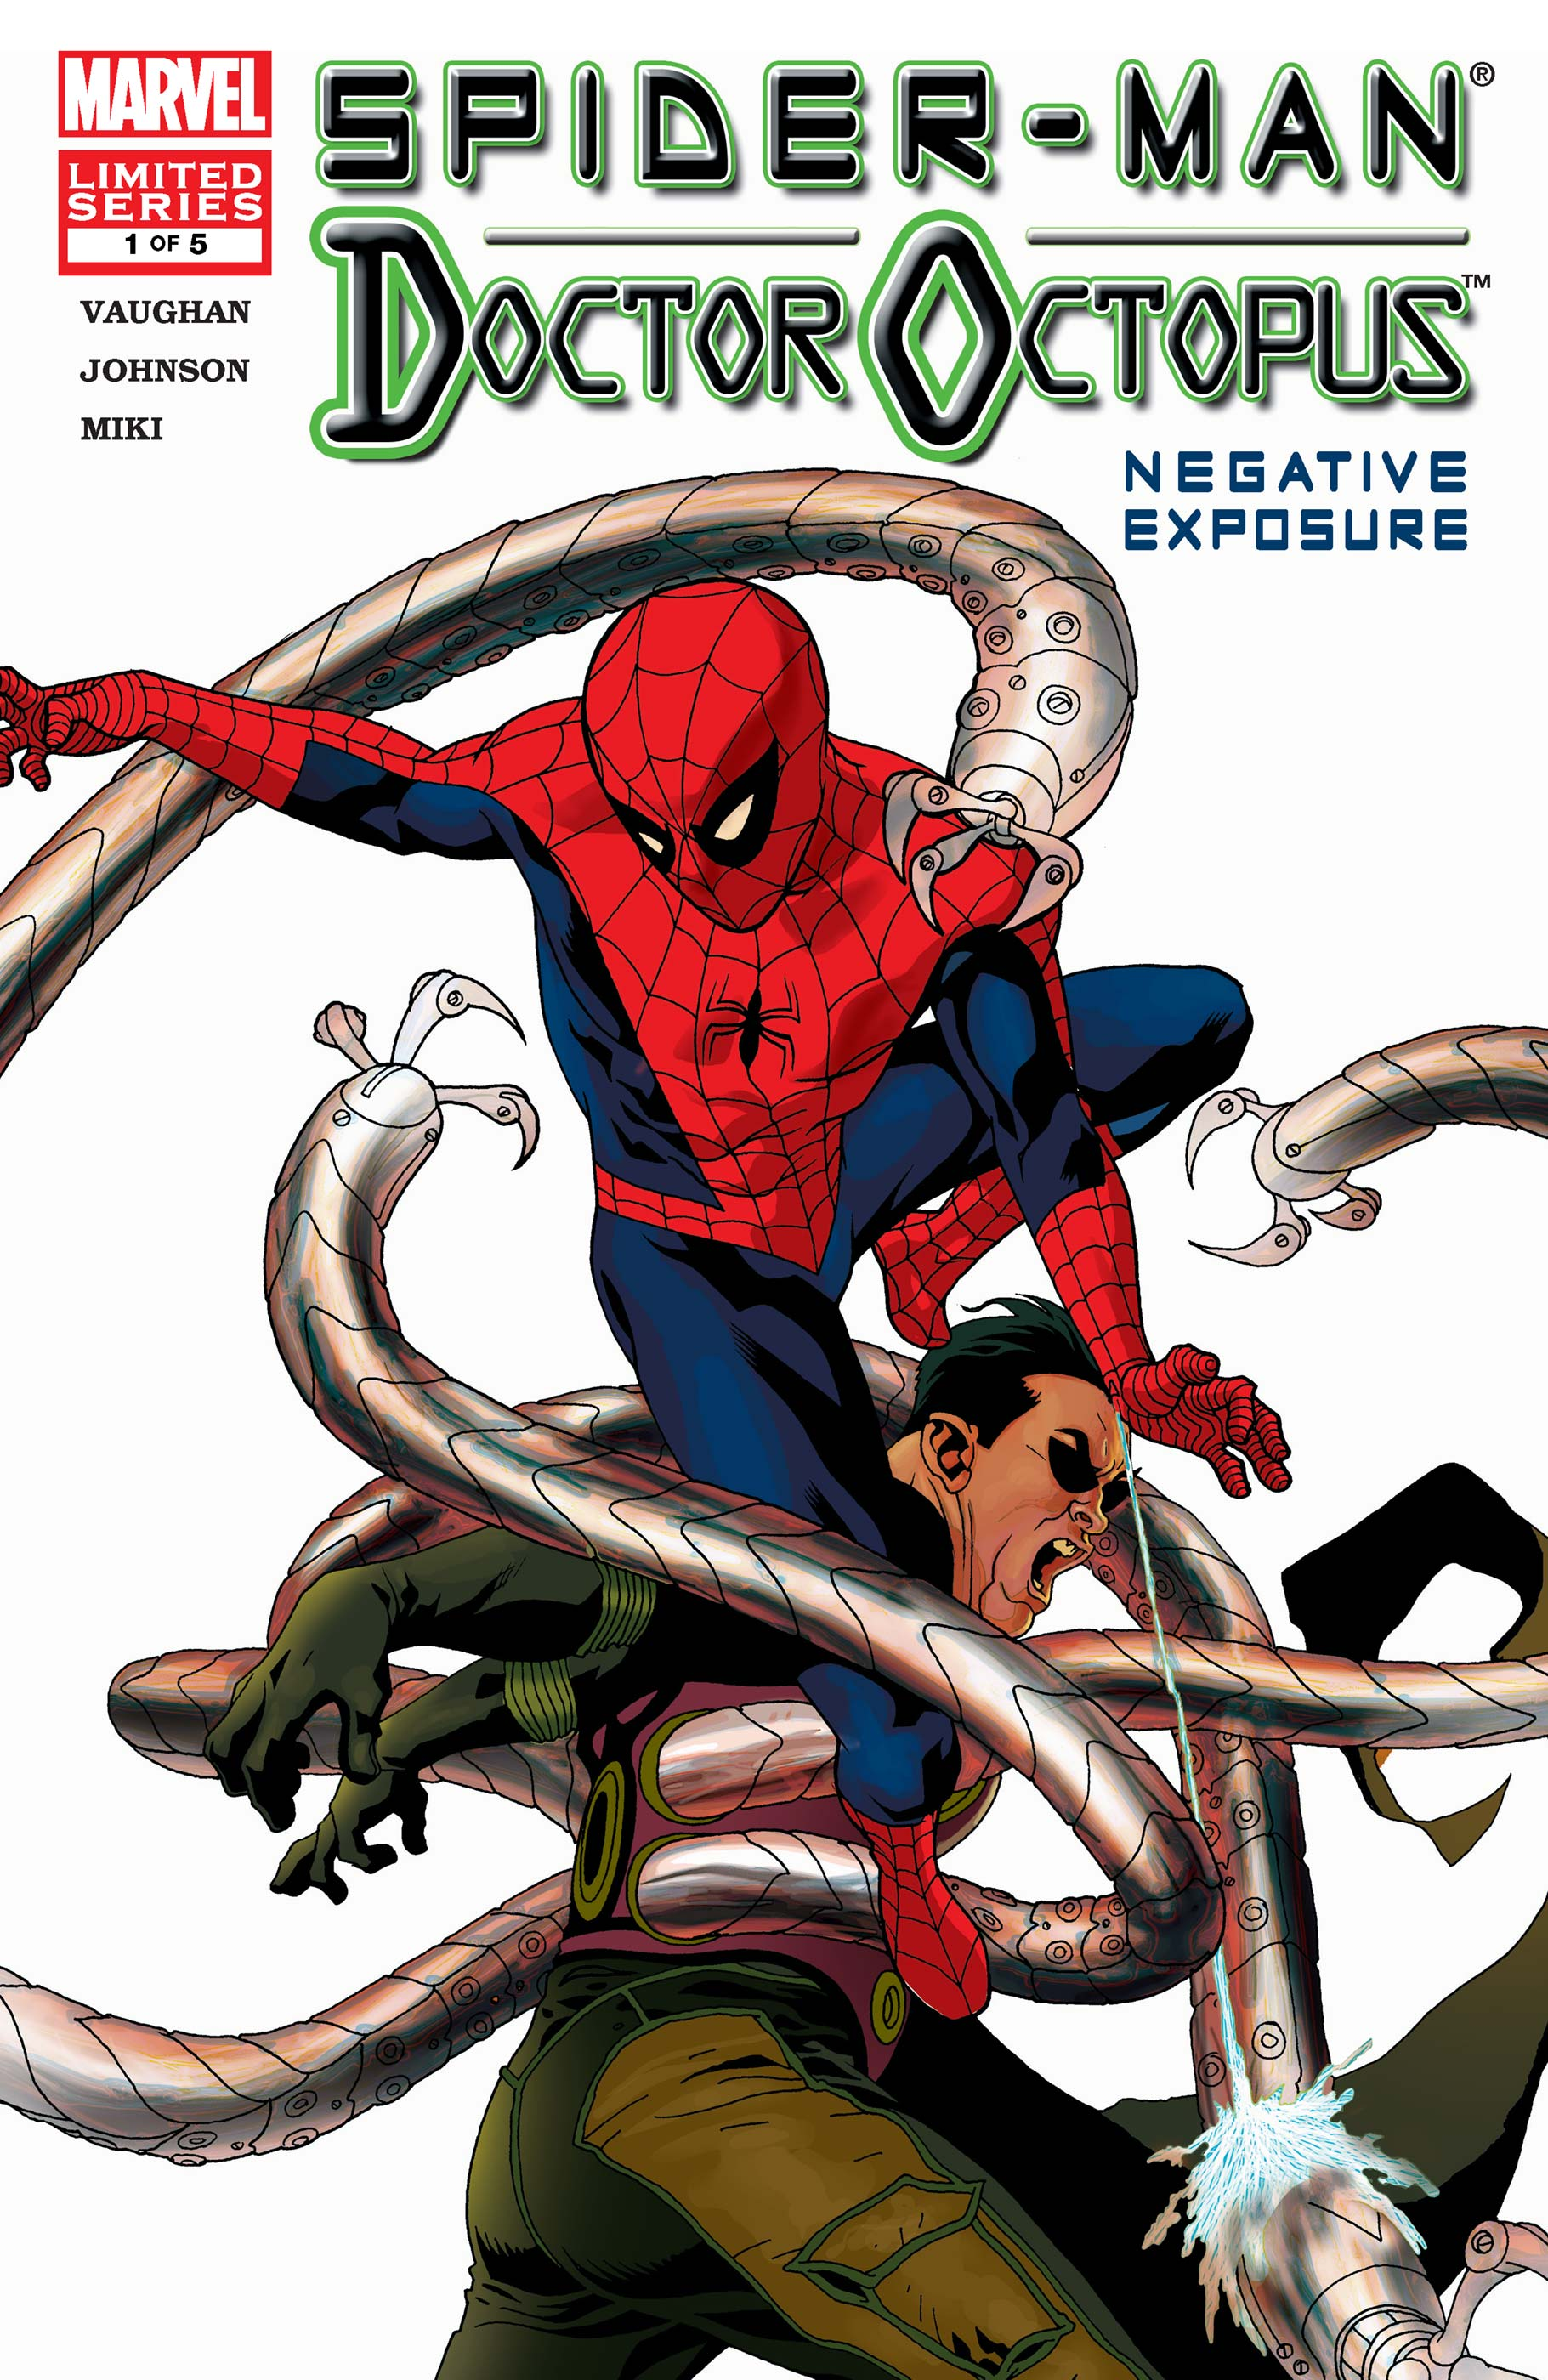 Spider-Man/Doctor Octopus: Negative Exposure (2003) #1